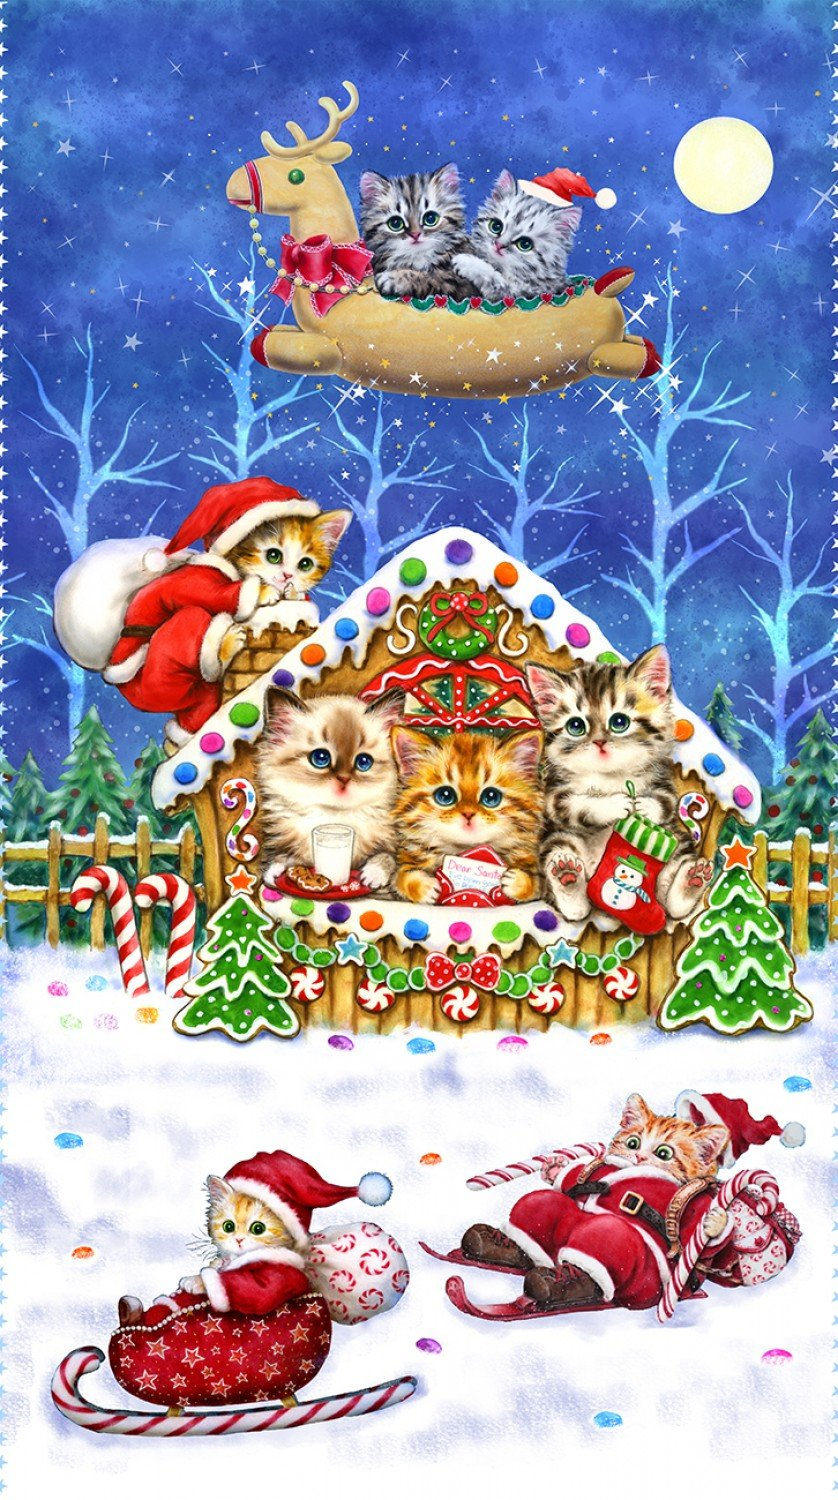 Kitten Christmas Holiday Theme Fabric Panel Digitally Printed Cotton Pre-Order